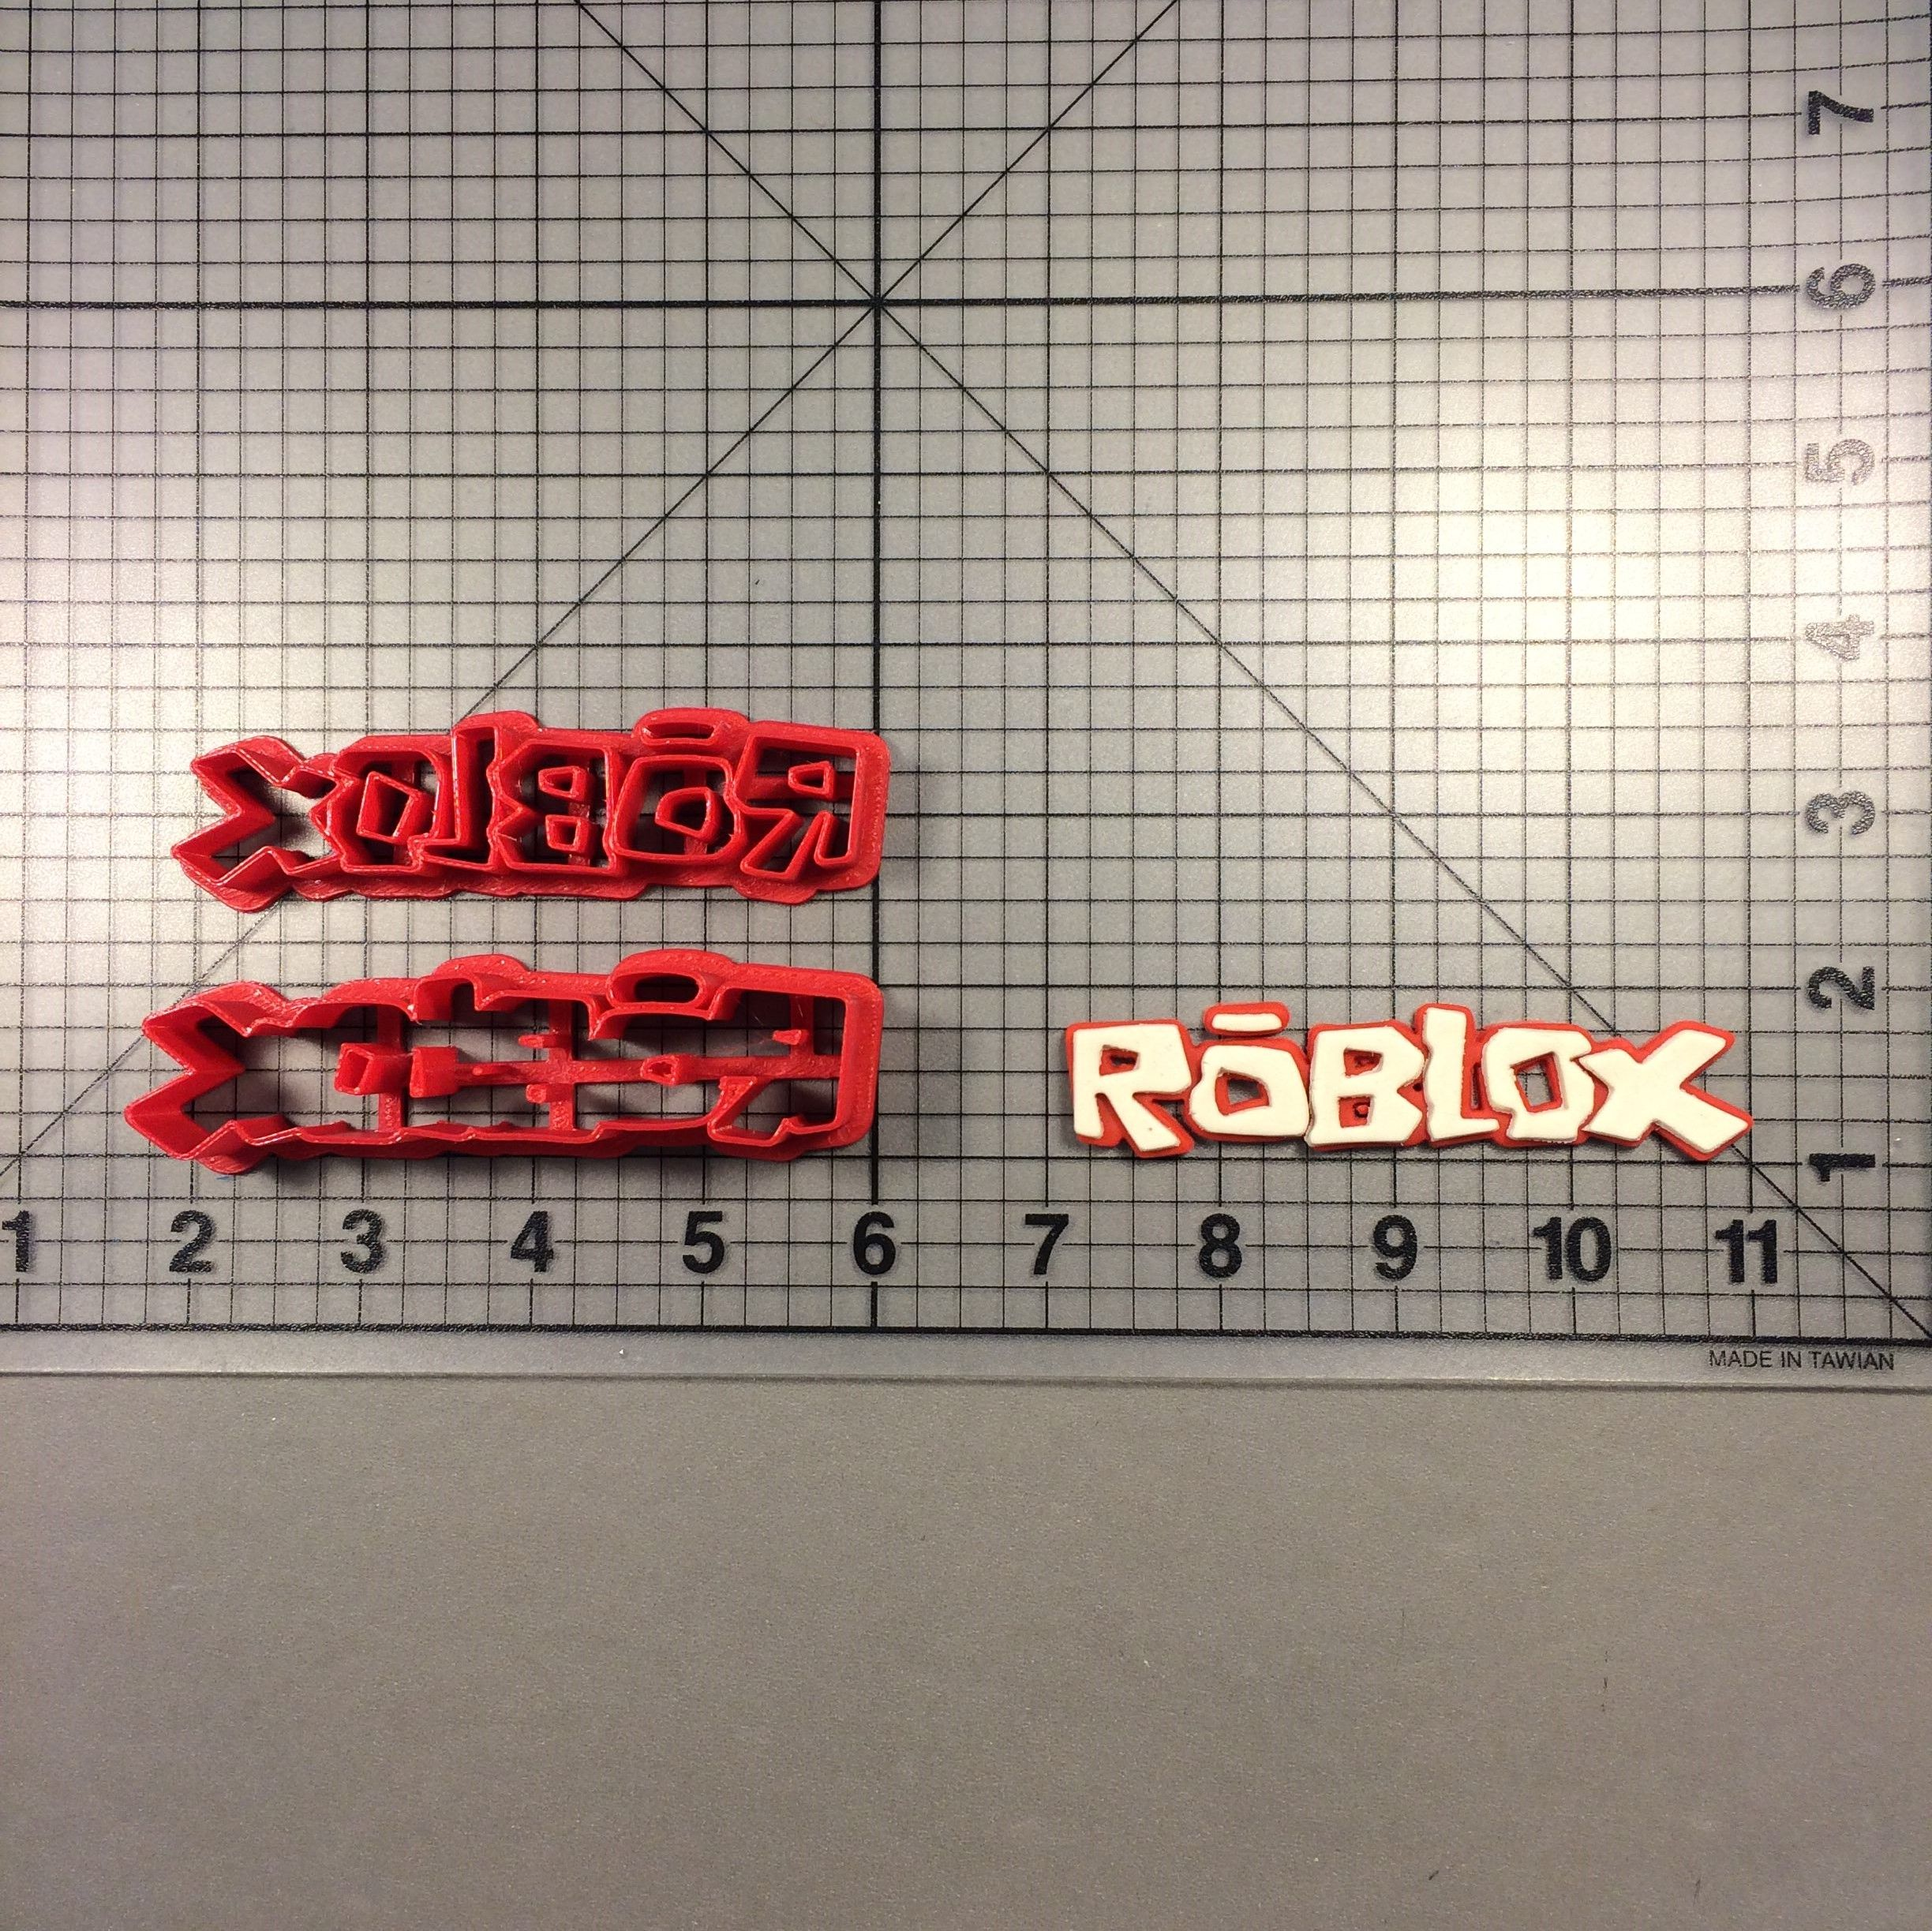 Roblox Custom Font Pin On Video Game Items